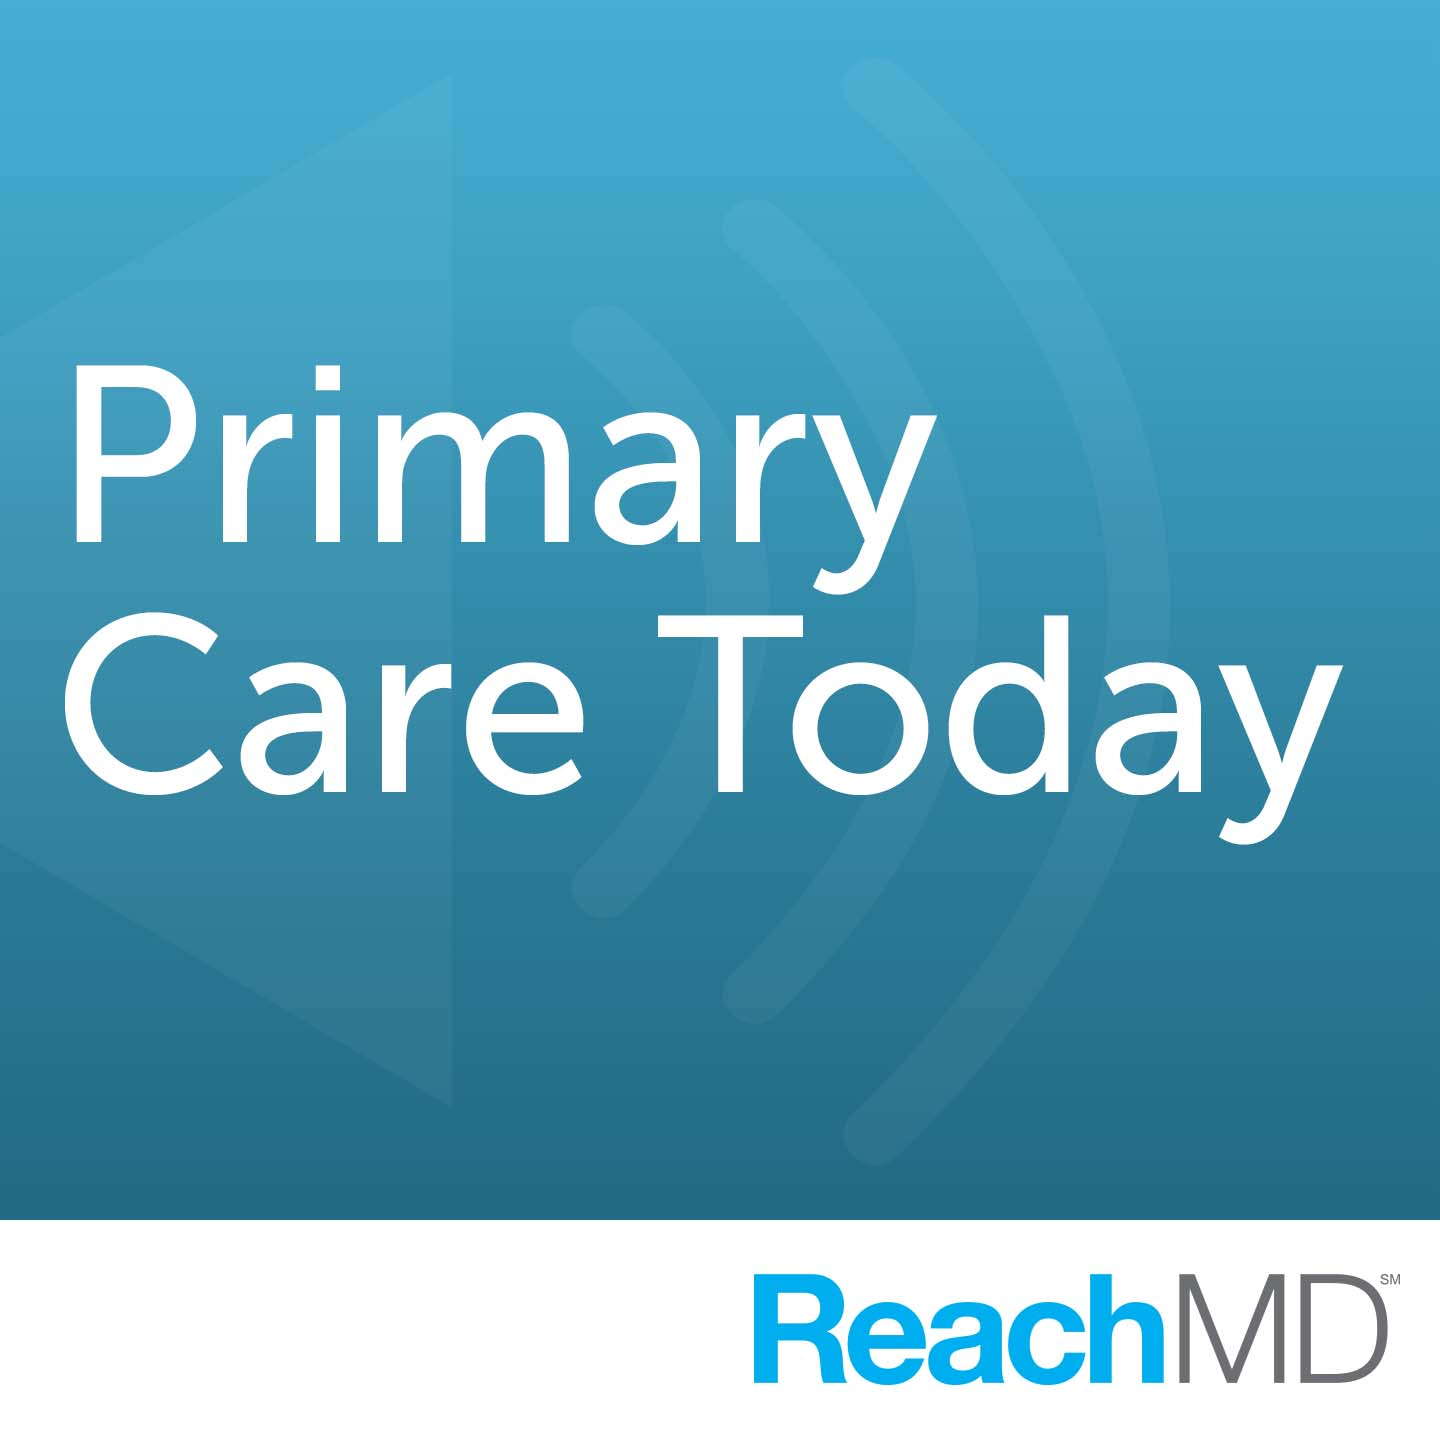 Primary Care Today